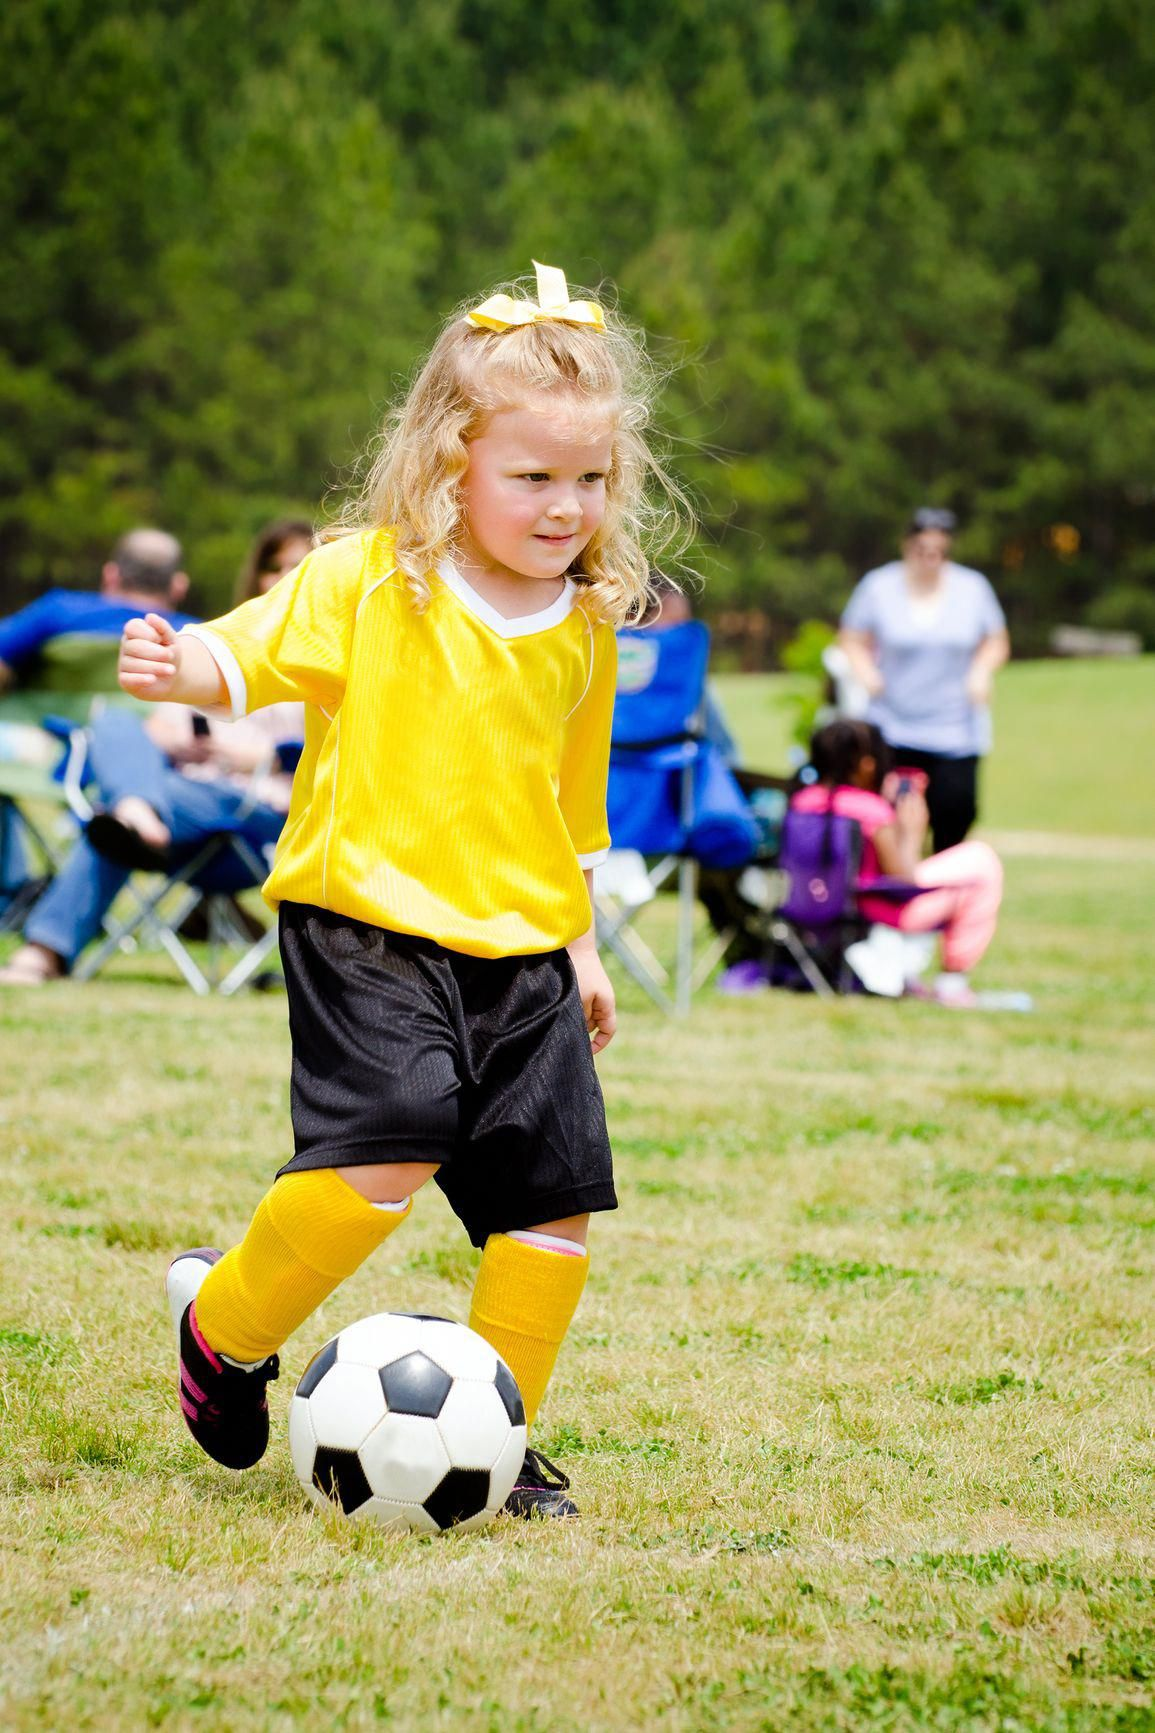 Tips And Tricks To Play A Great Game Of Football Girl Playing Soccer Kids Soccer Soccer